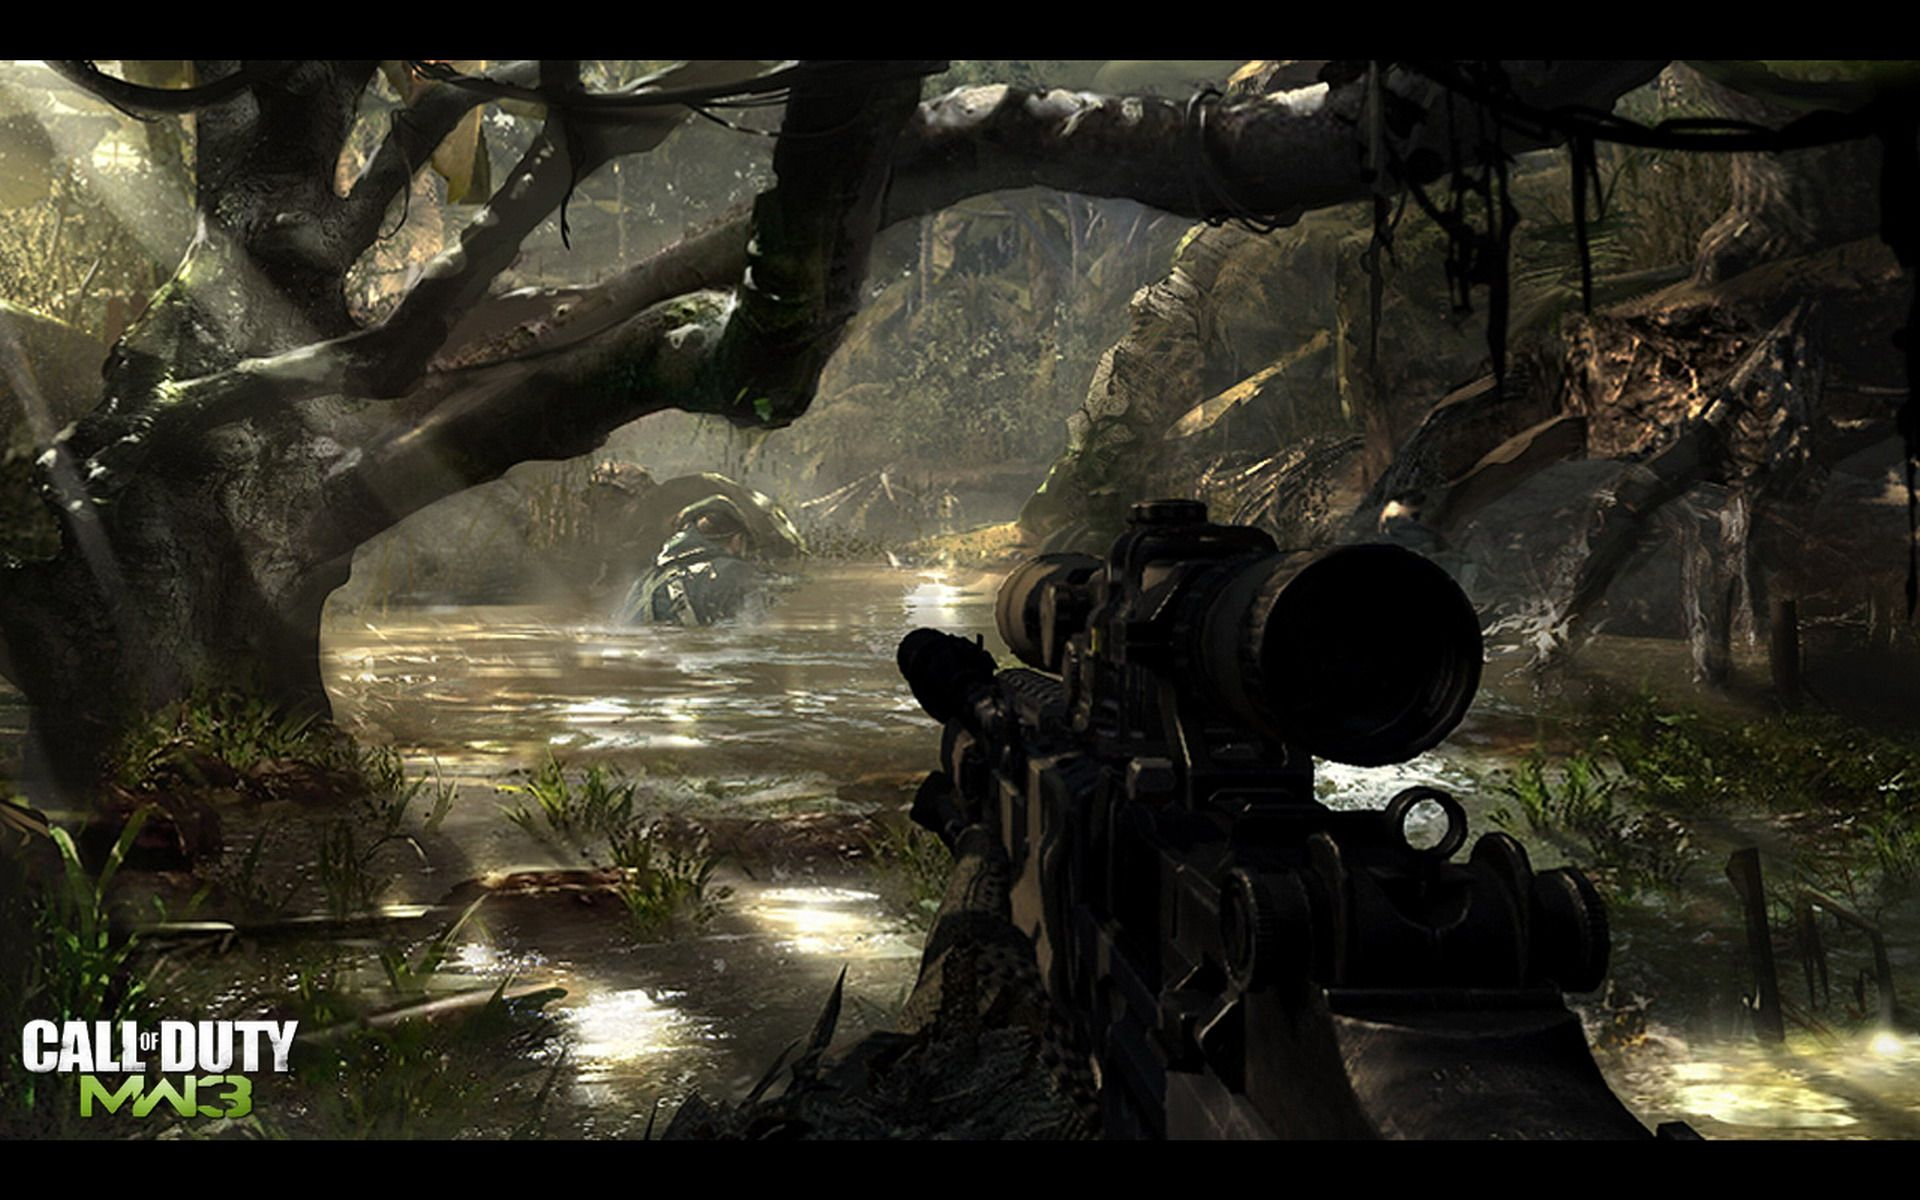 Call Of Duty Modern Warfare 3 Wallpaper Posted By Ryan Simpson